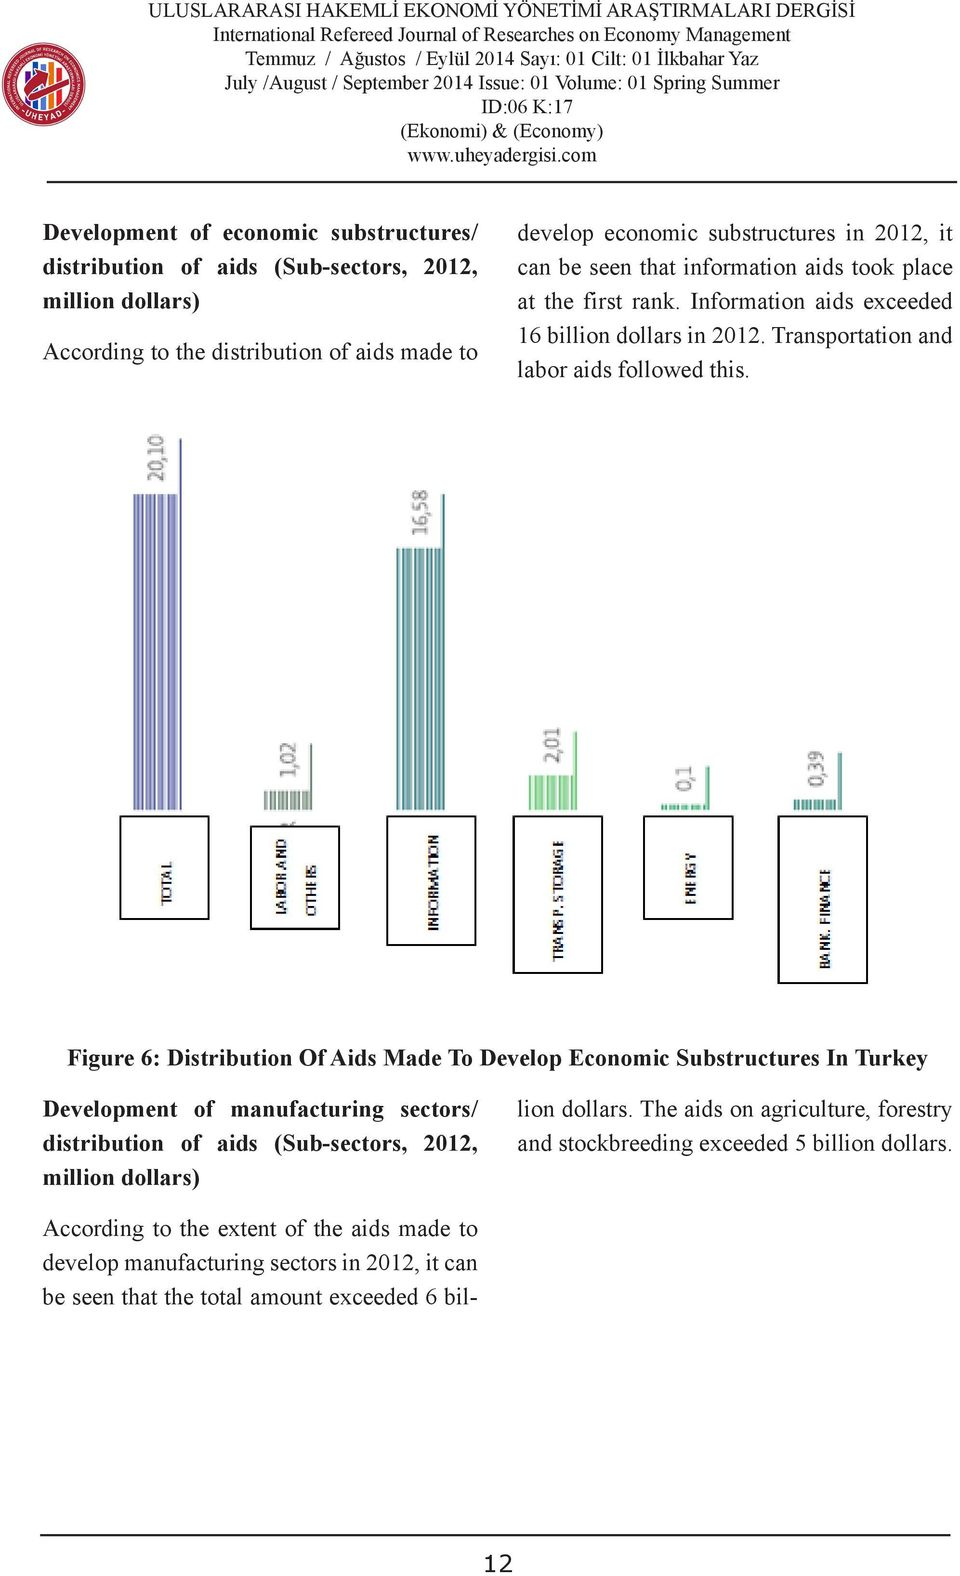 Figure 6: Distribution Of Aids Made To Develop Economic Substructures In Turkey Development of manufacturing sectors/ distribution of aids (Sub-sectors, 2012, million dollars) According to the